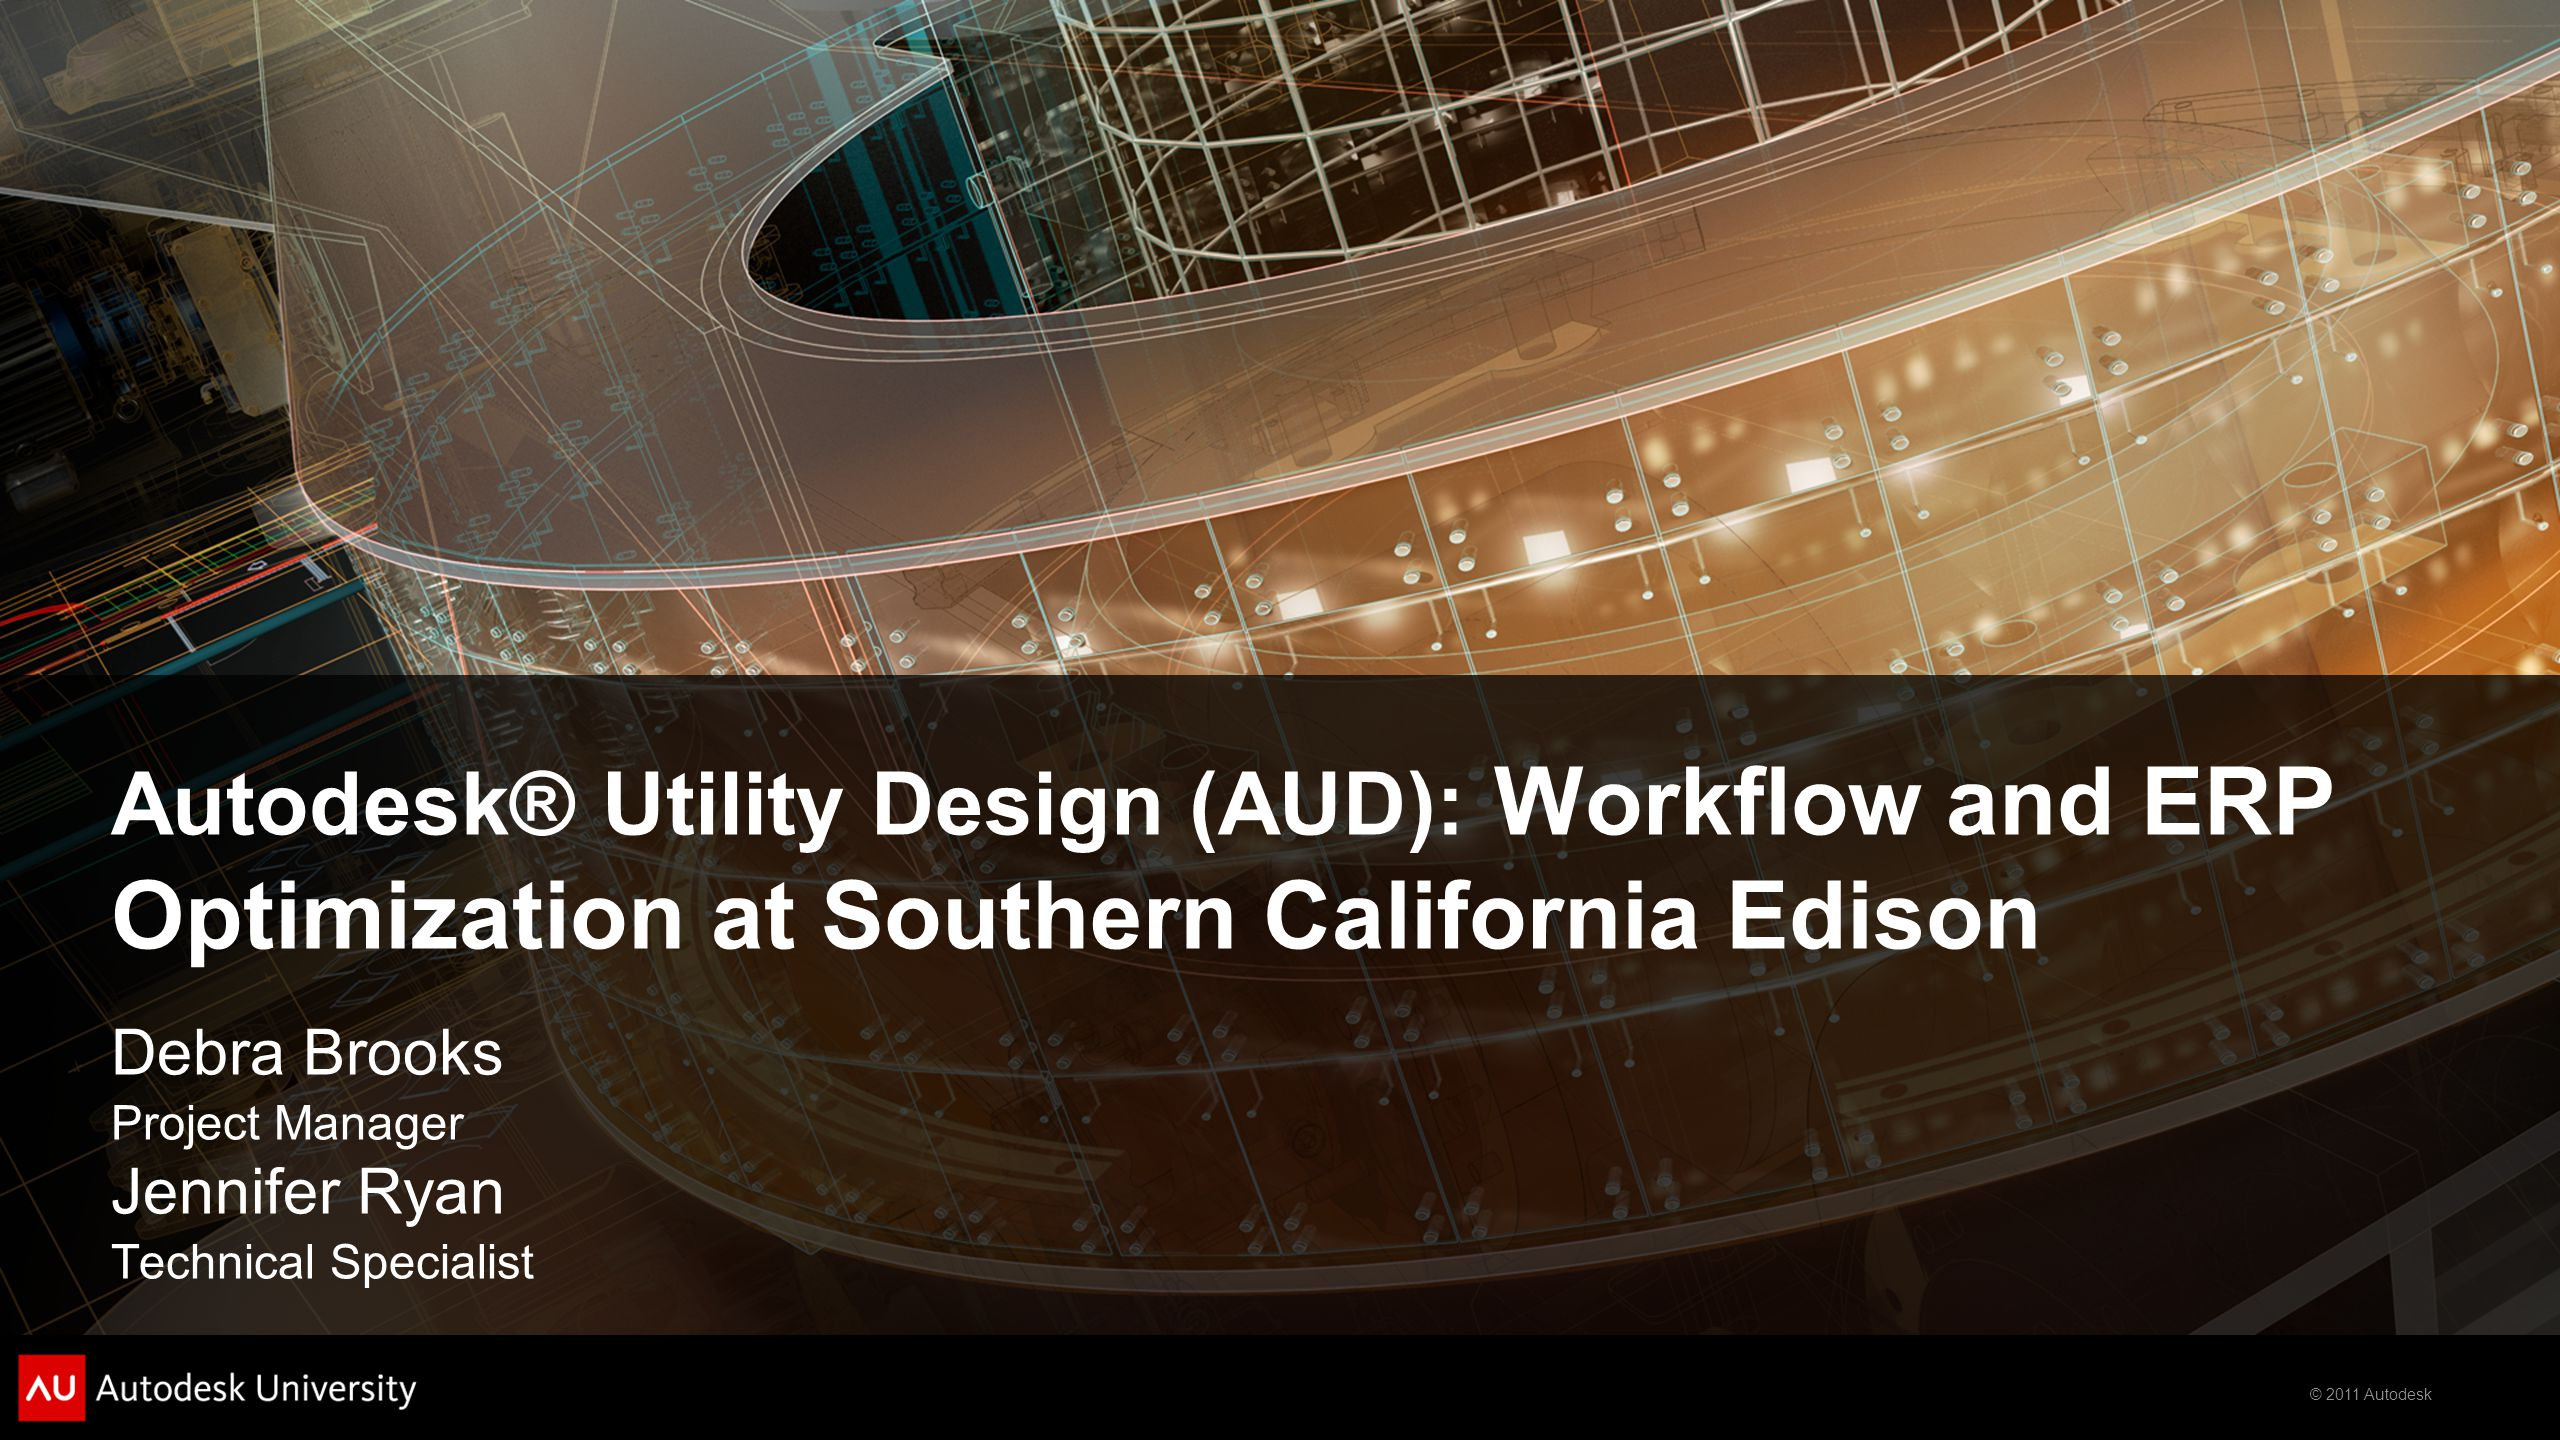 © 2011 Autodesk Class Summary In this class, you will learn about SCE's:  Vision and approach used to unify design processes for Distribution and Transmission using AUD  Ability to realize the benefits of an IPSEC based work order lifecycle  Use of AUD to enable standardization in the design and engineering processes  Technical integration of work management applications